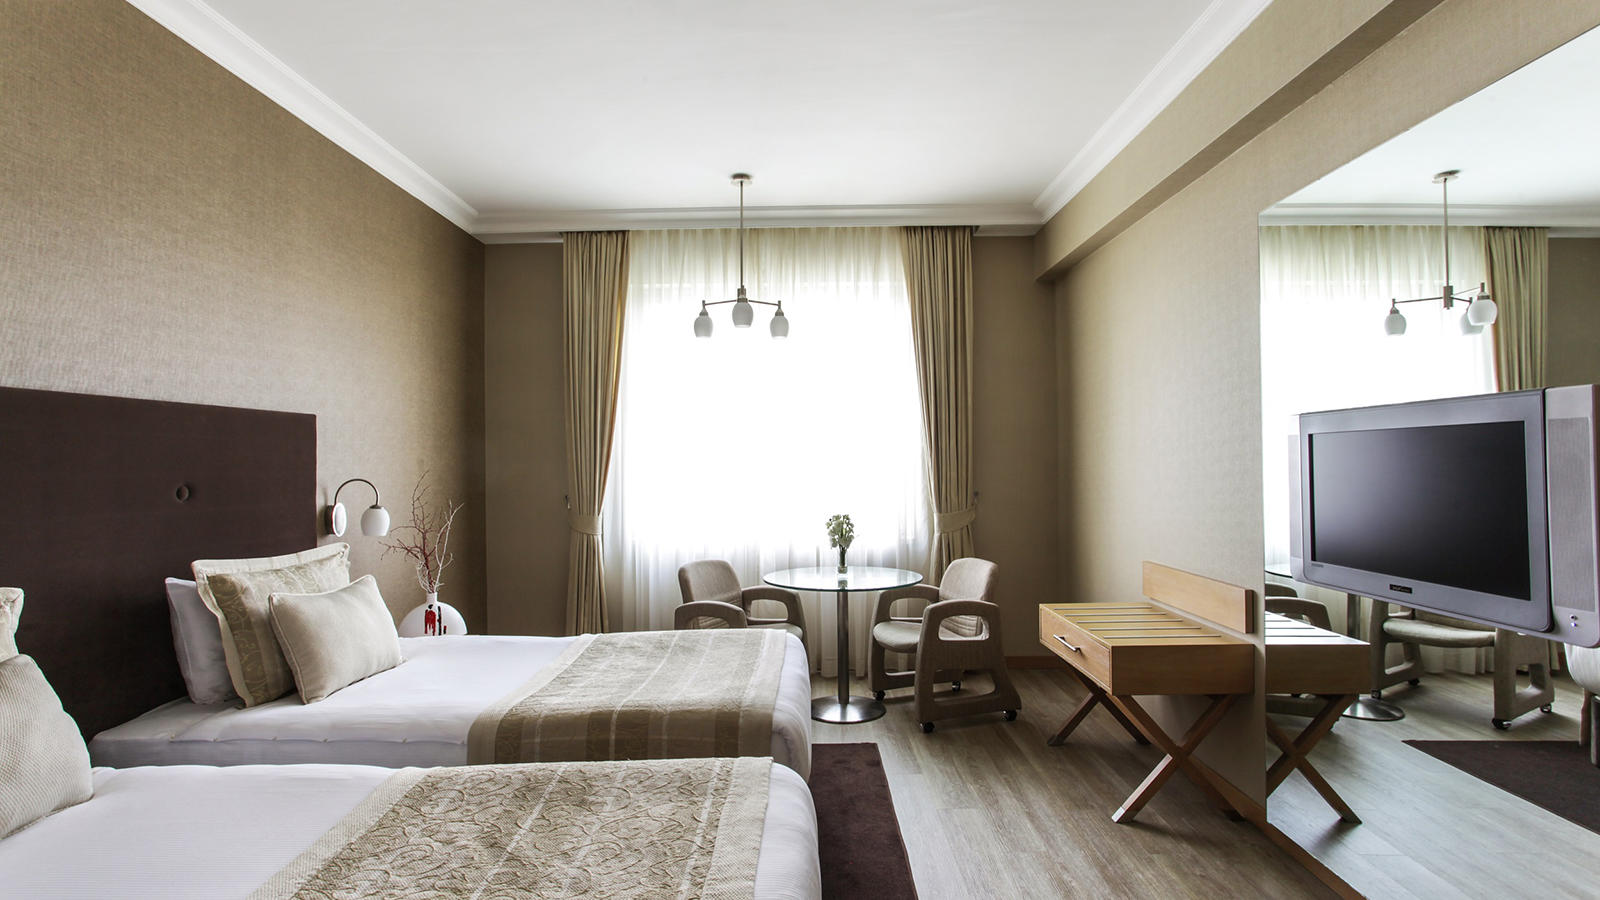 WOW Airport Hotel Standard Room Twin Bed at Wow Hotels Group